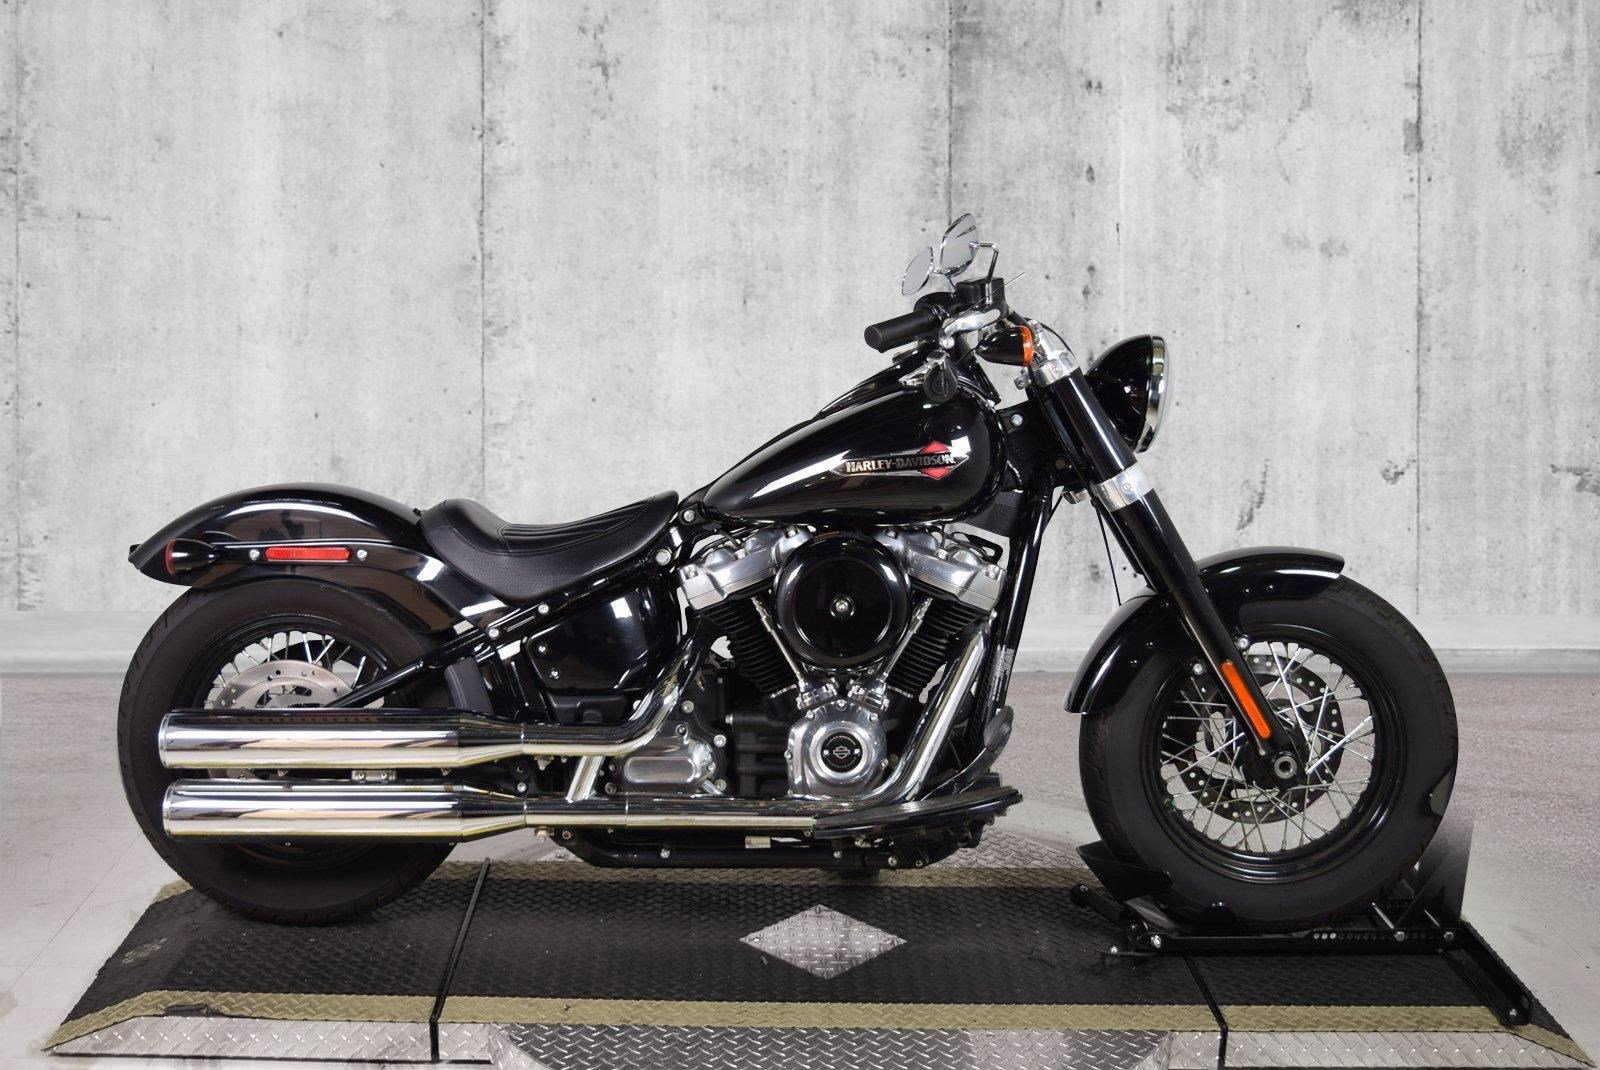 Pre-Owned 2019 Harley-Davidson Softail Slim FLSL